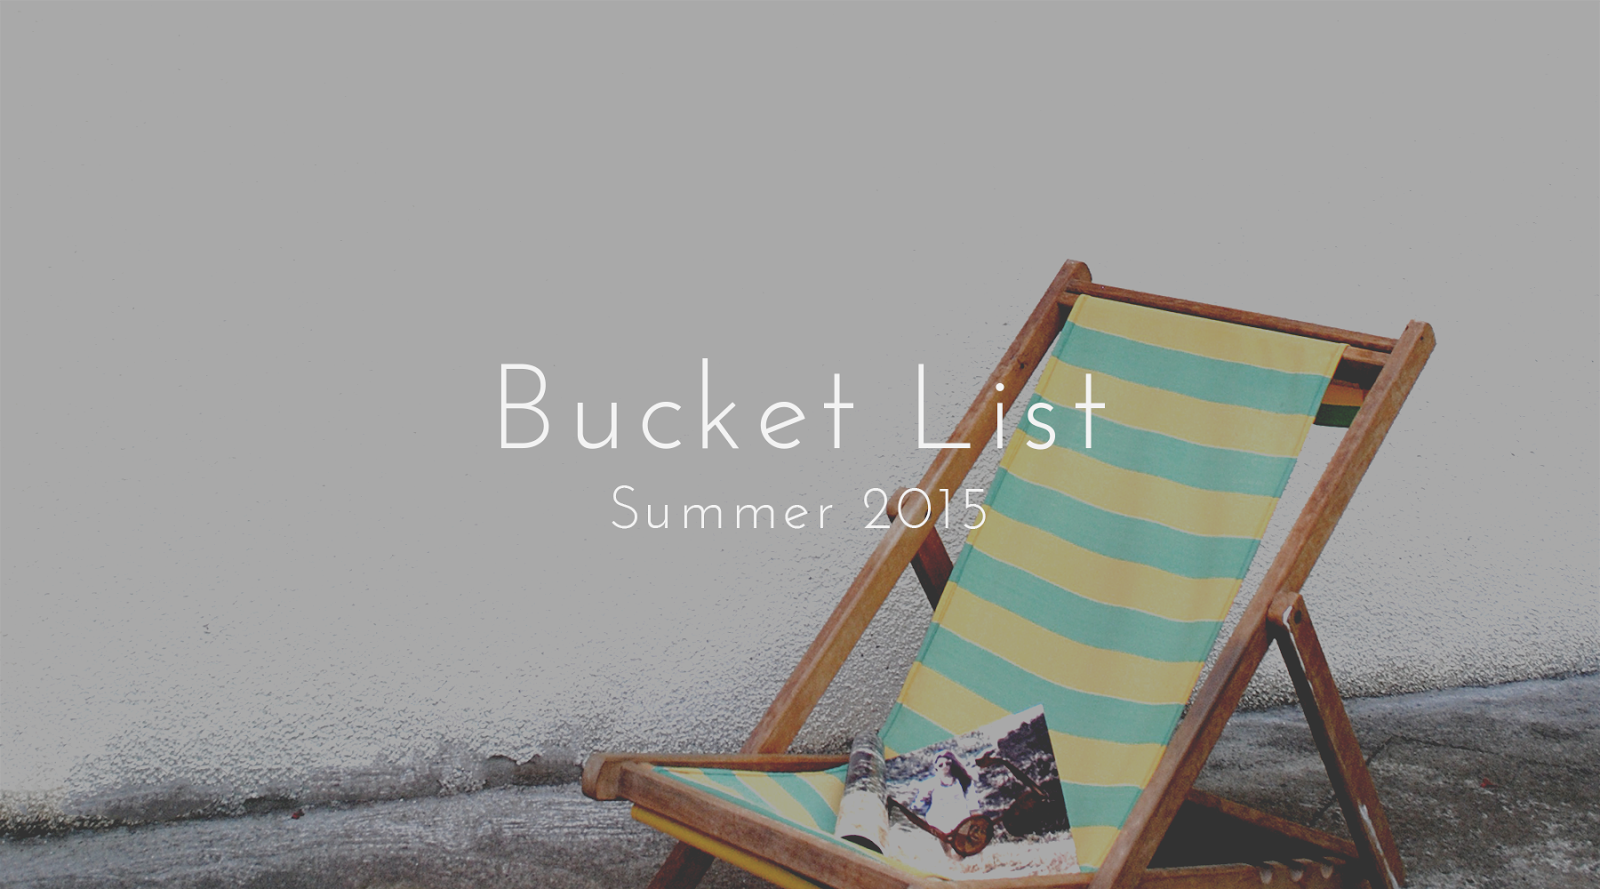 Bucket List: Summer 2015